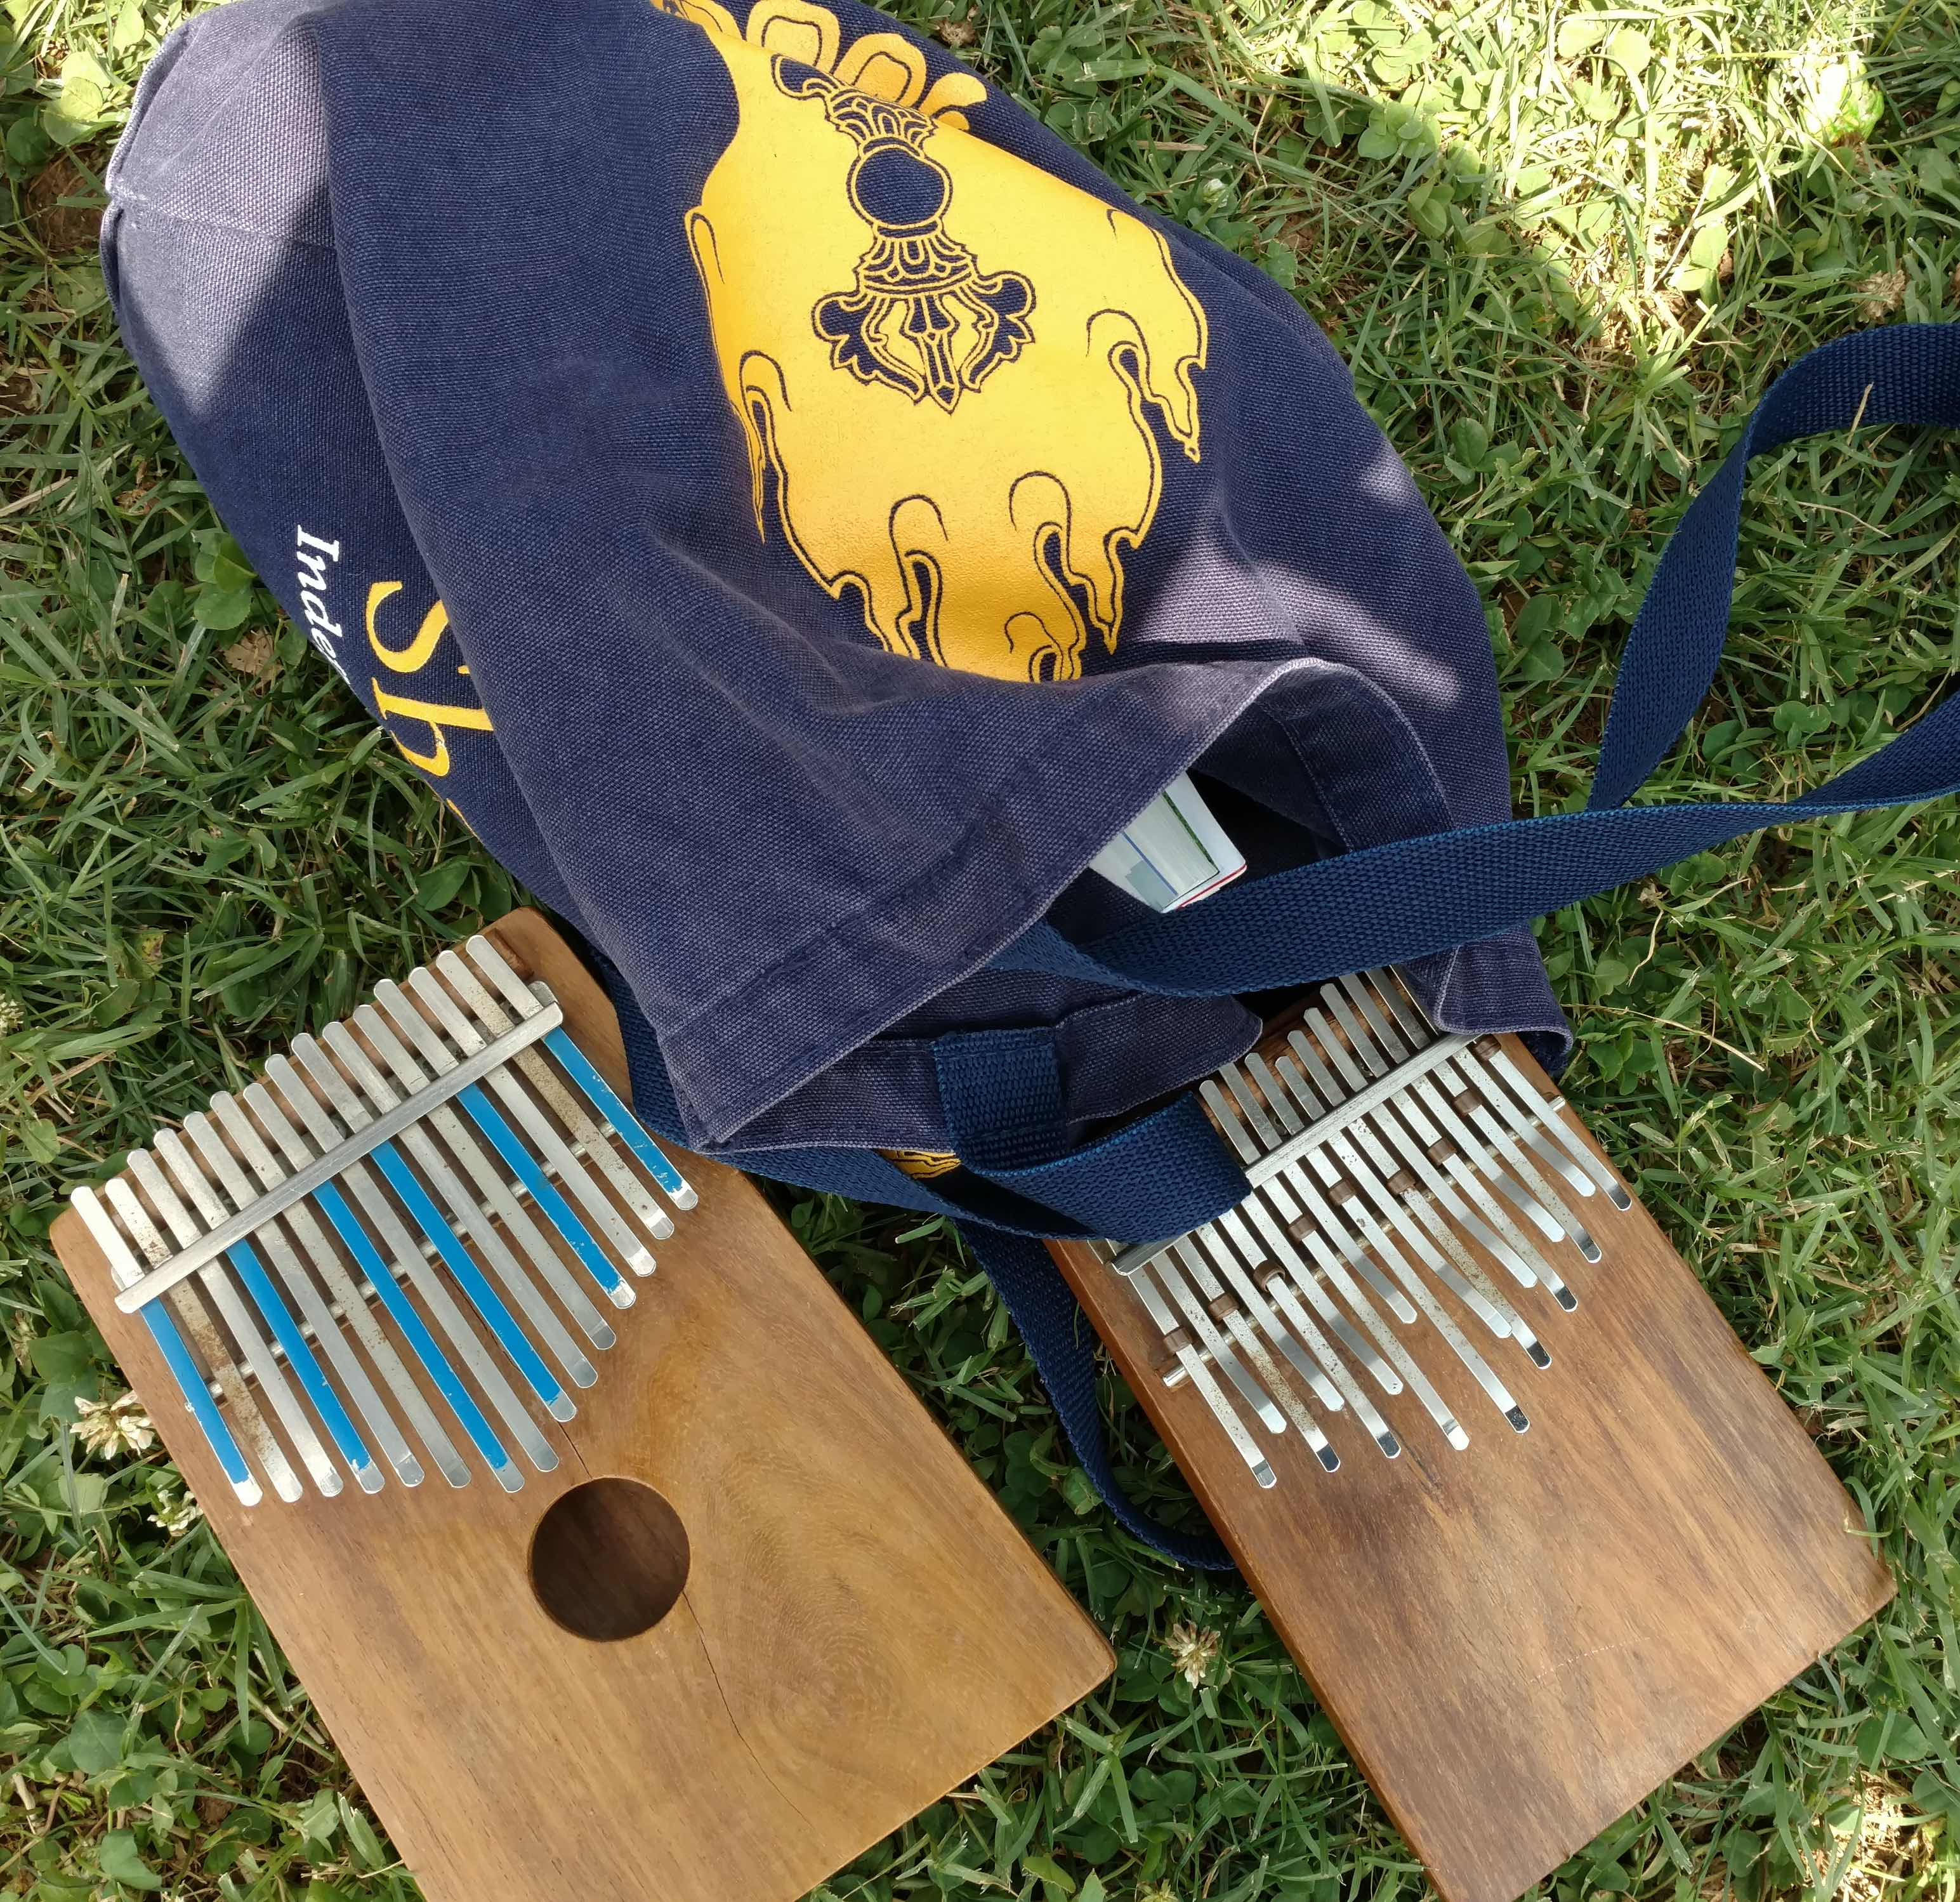 An alto kalimba and a treble kalimba (right) on the grass.